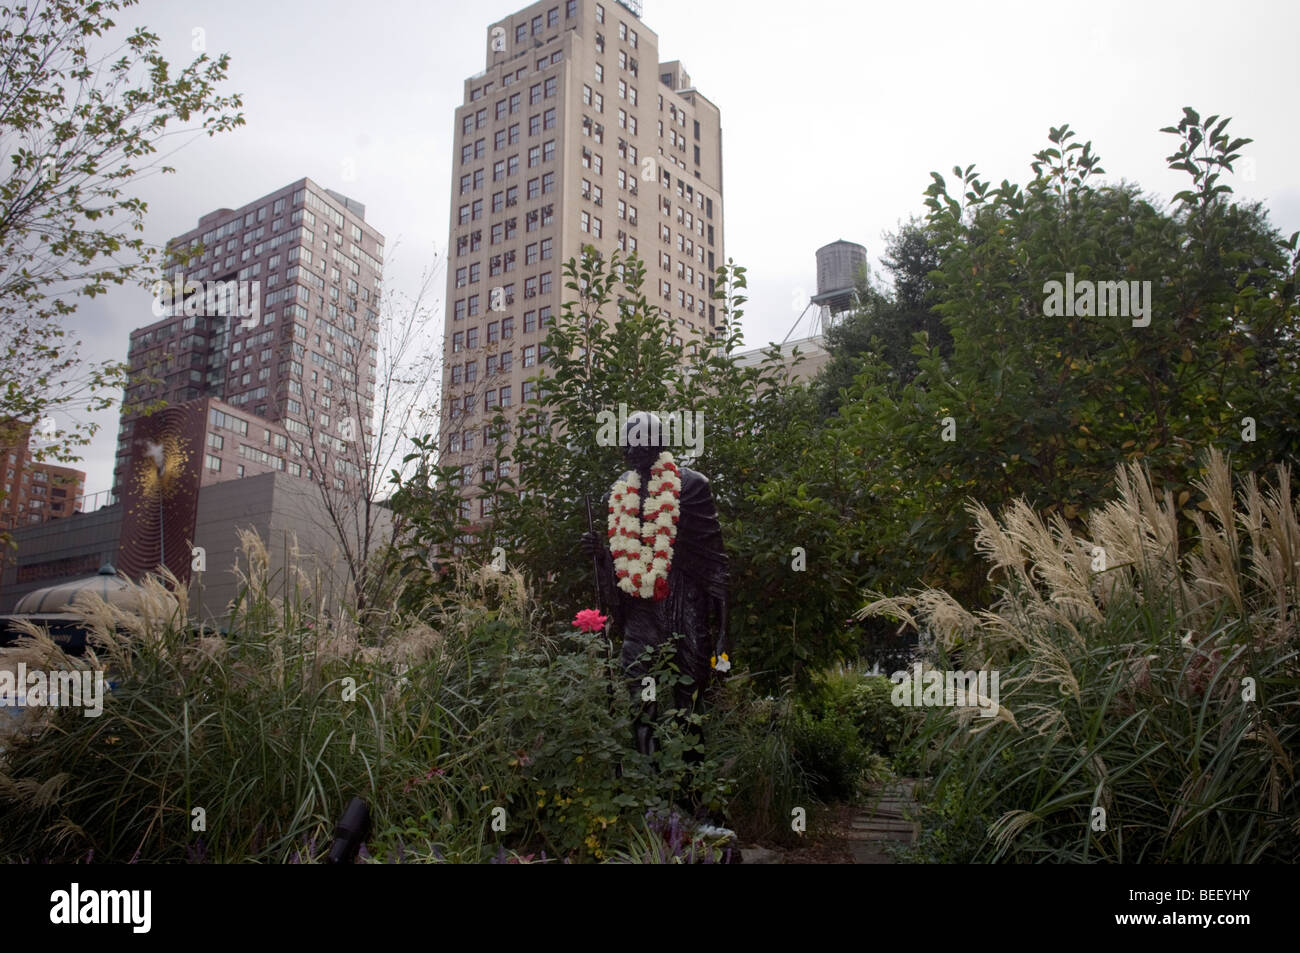 The Mahatma Gandhi statue in New York is hung with garlands on Friday, October 2, 2009 for his birthday - Stock Image